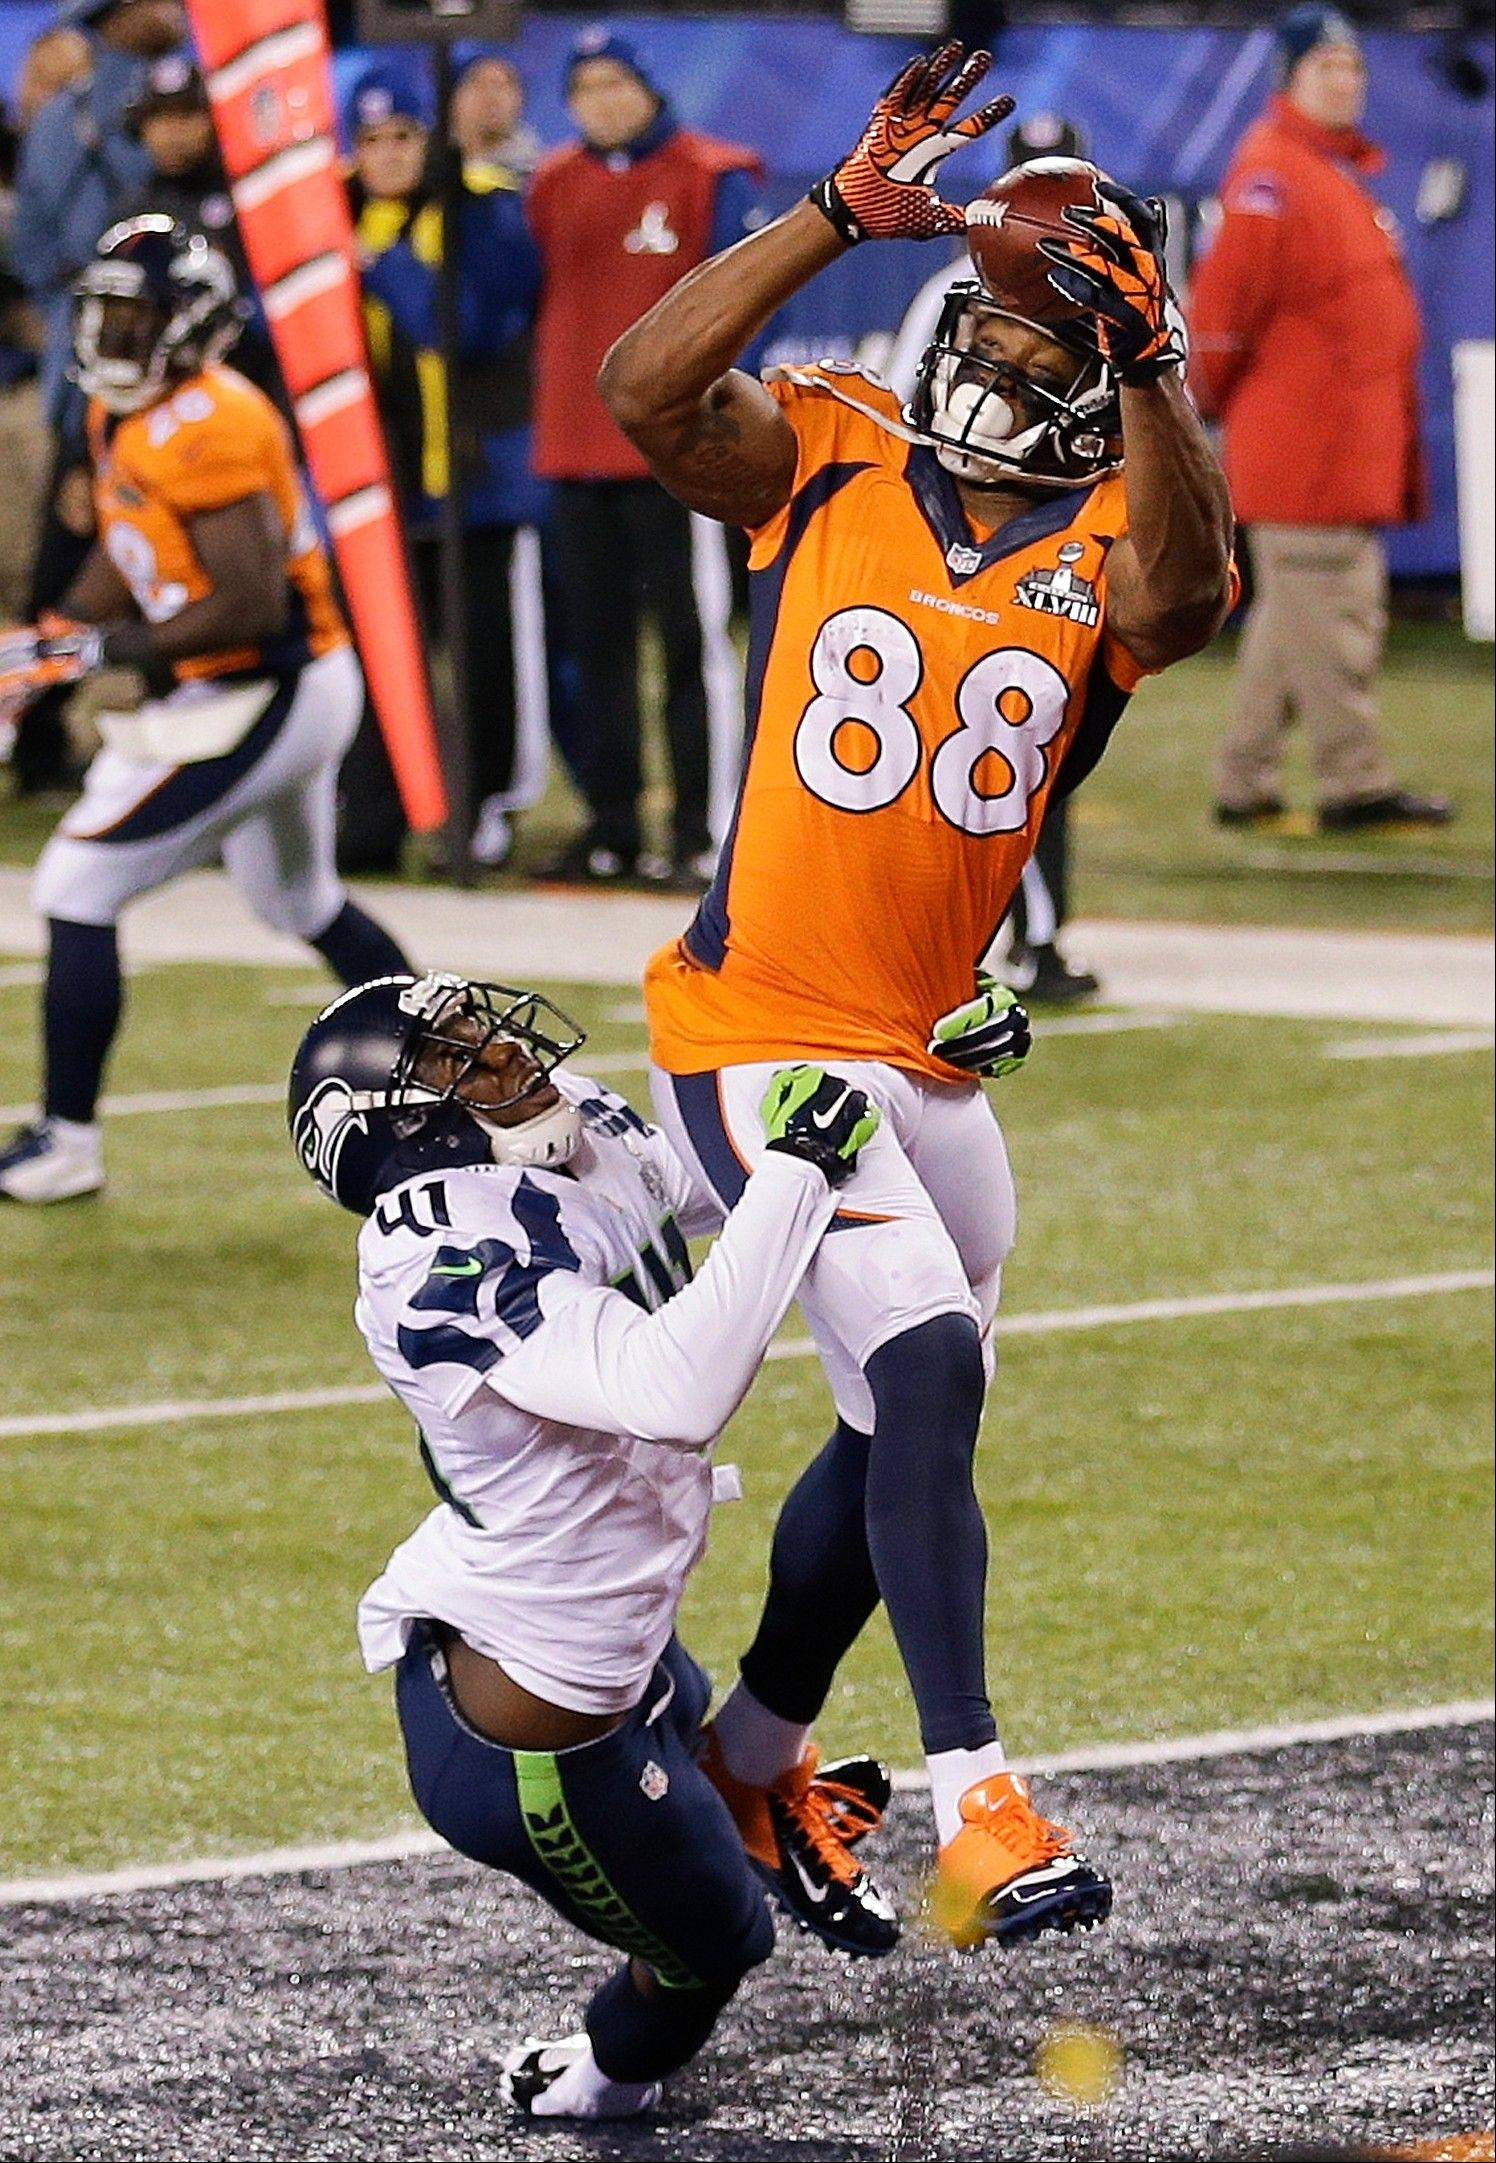 Denver Broncos wide receiver Demaryius Thomas (88) is hit by Seattle Seahawks cornerback Byron Maxwell (41) as he makes a touchdown catch during the second half.